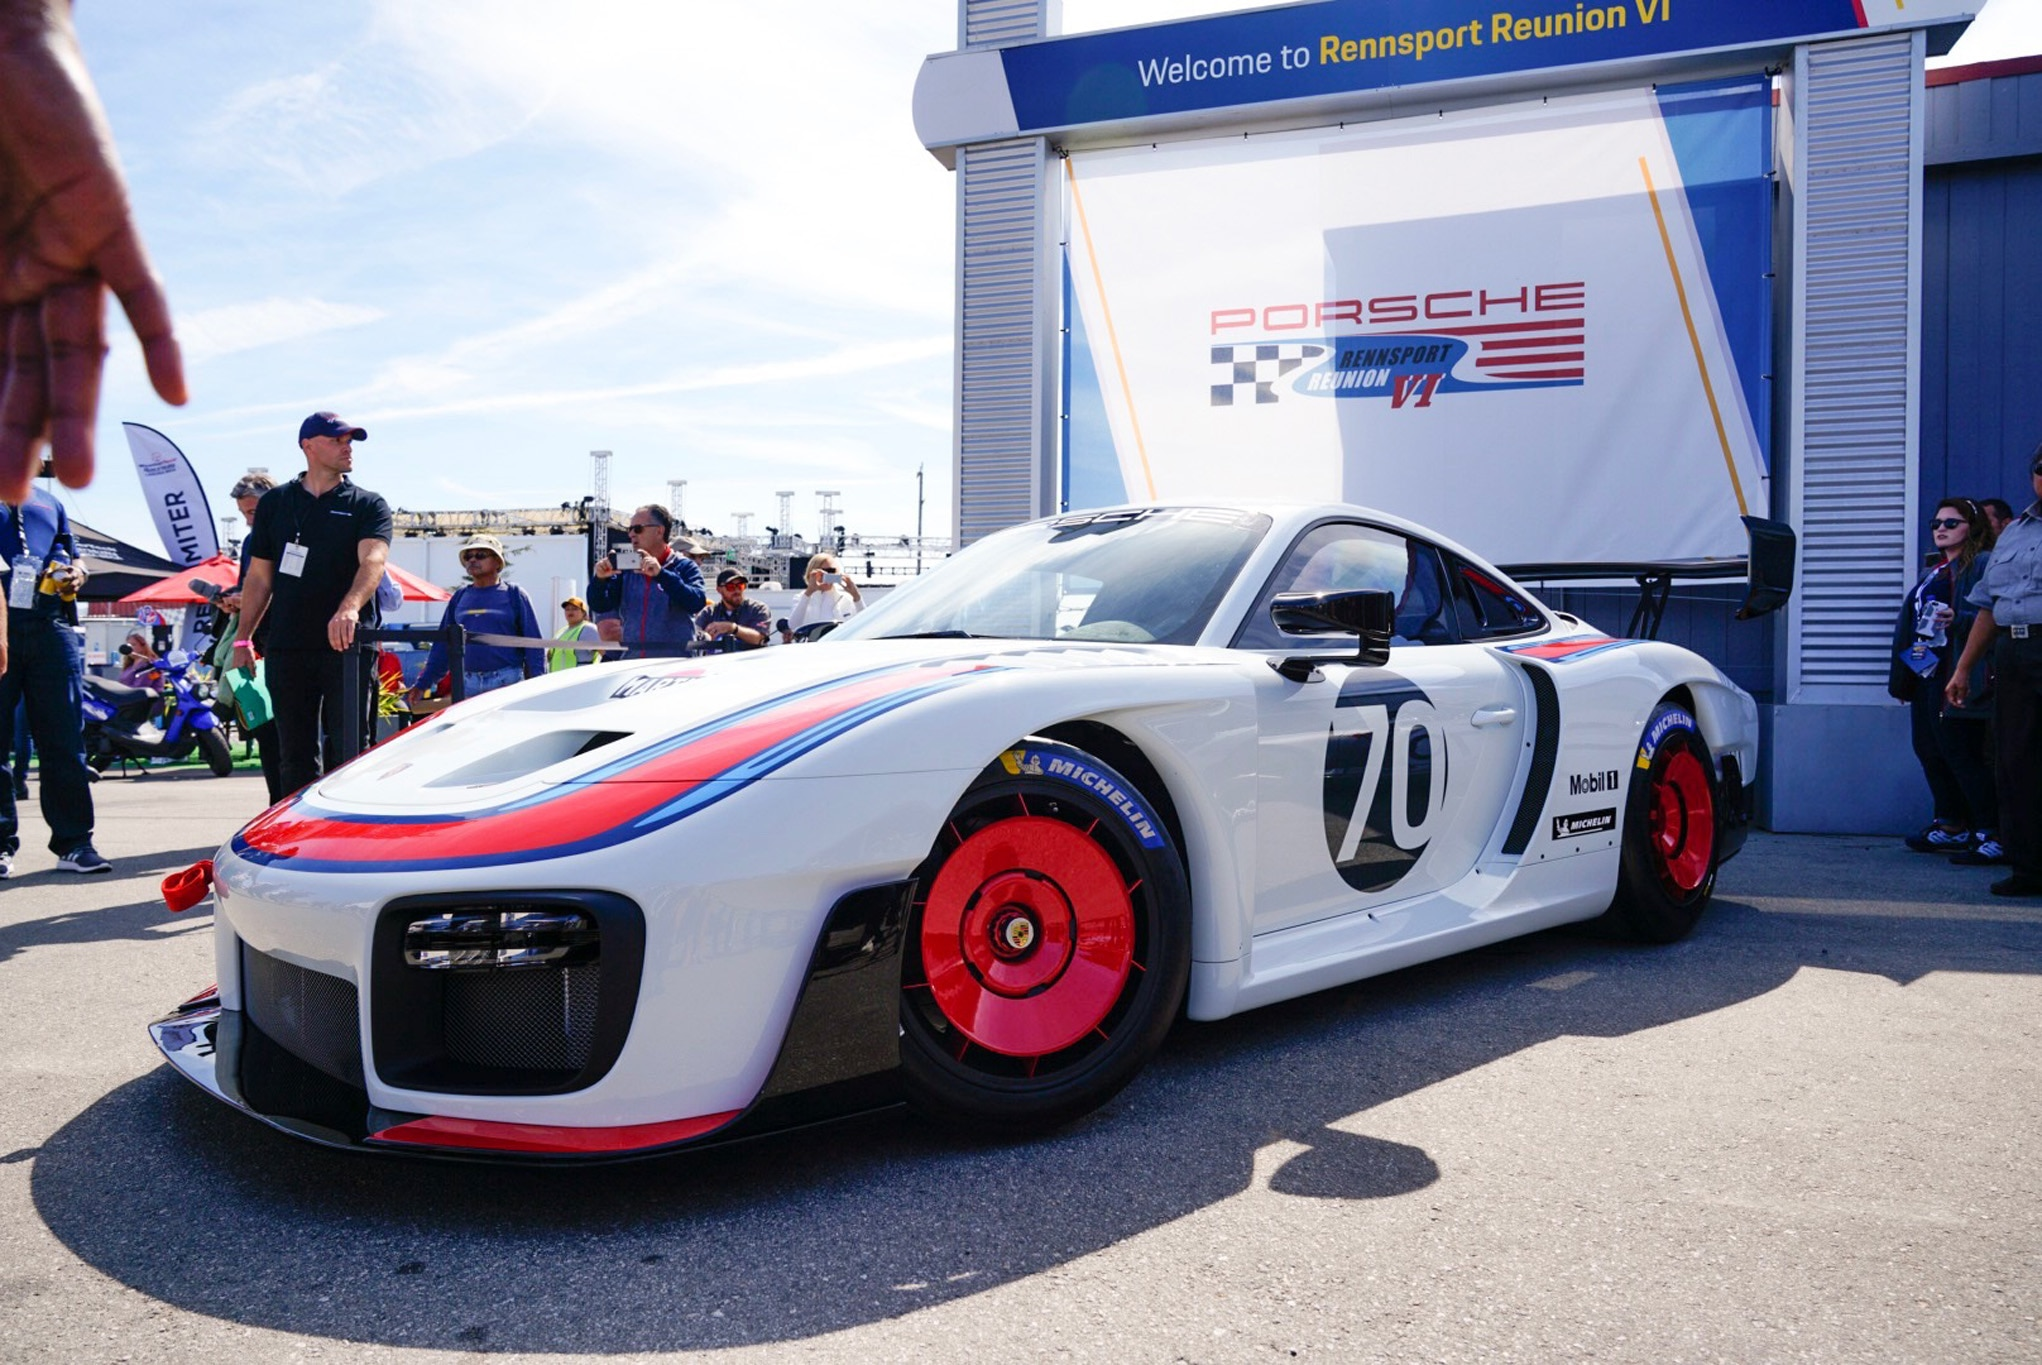 New 700hp Porsche 935 track auto unveiled